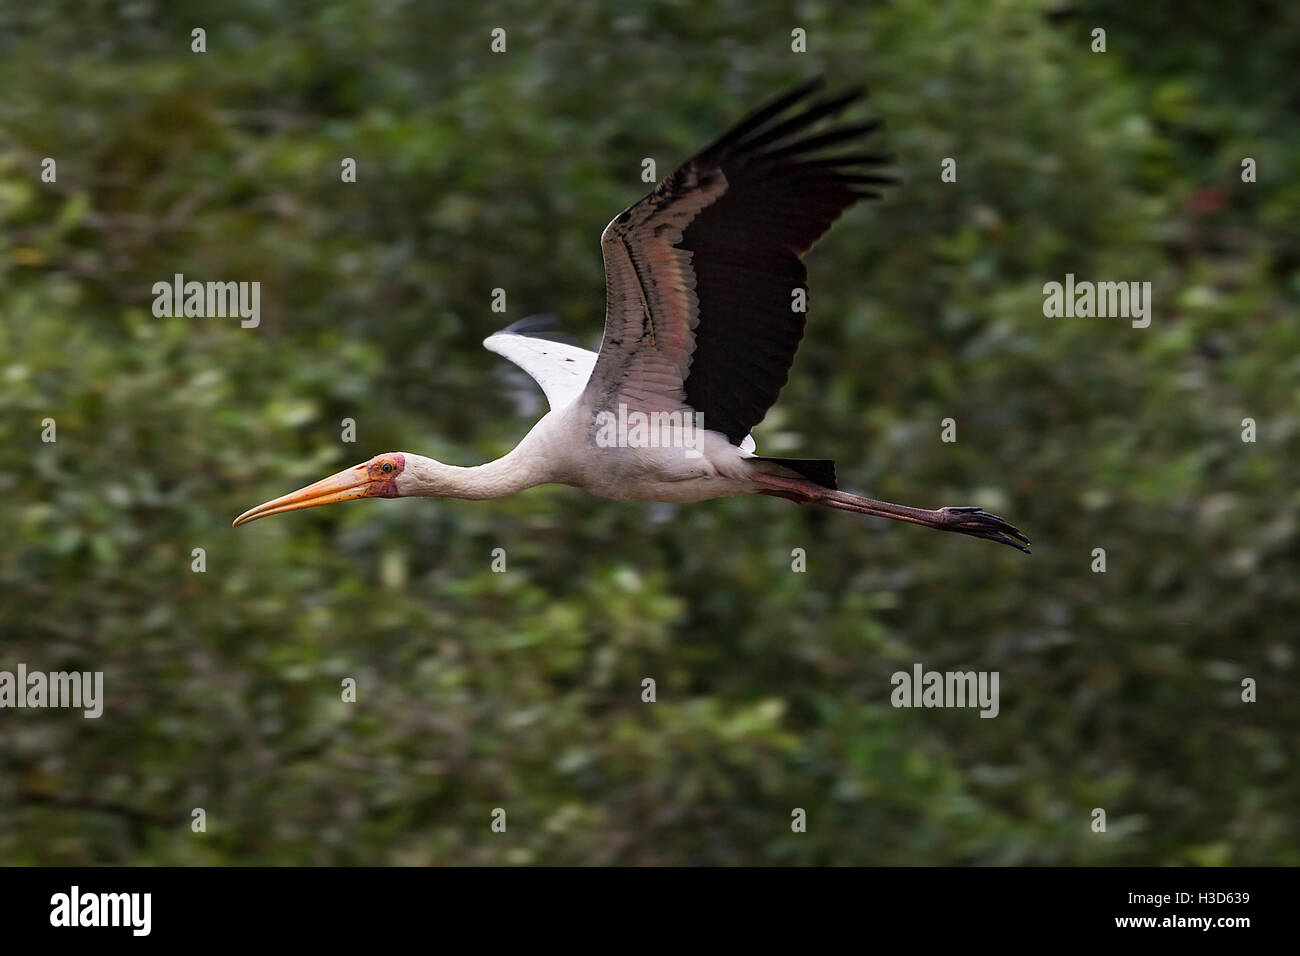 A Milky stork flying over a river in a mangrove forest, Sungei Buloh, Singapore Stock Photo